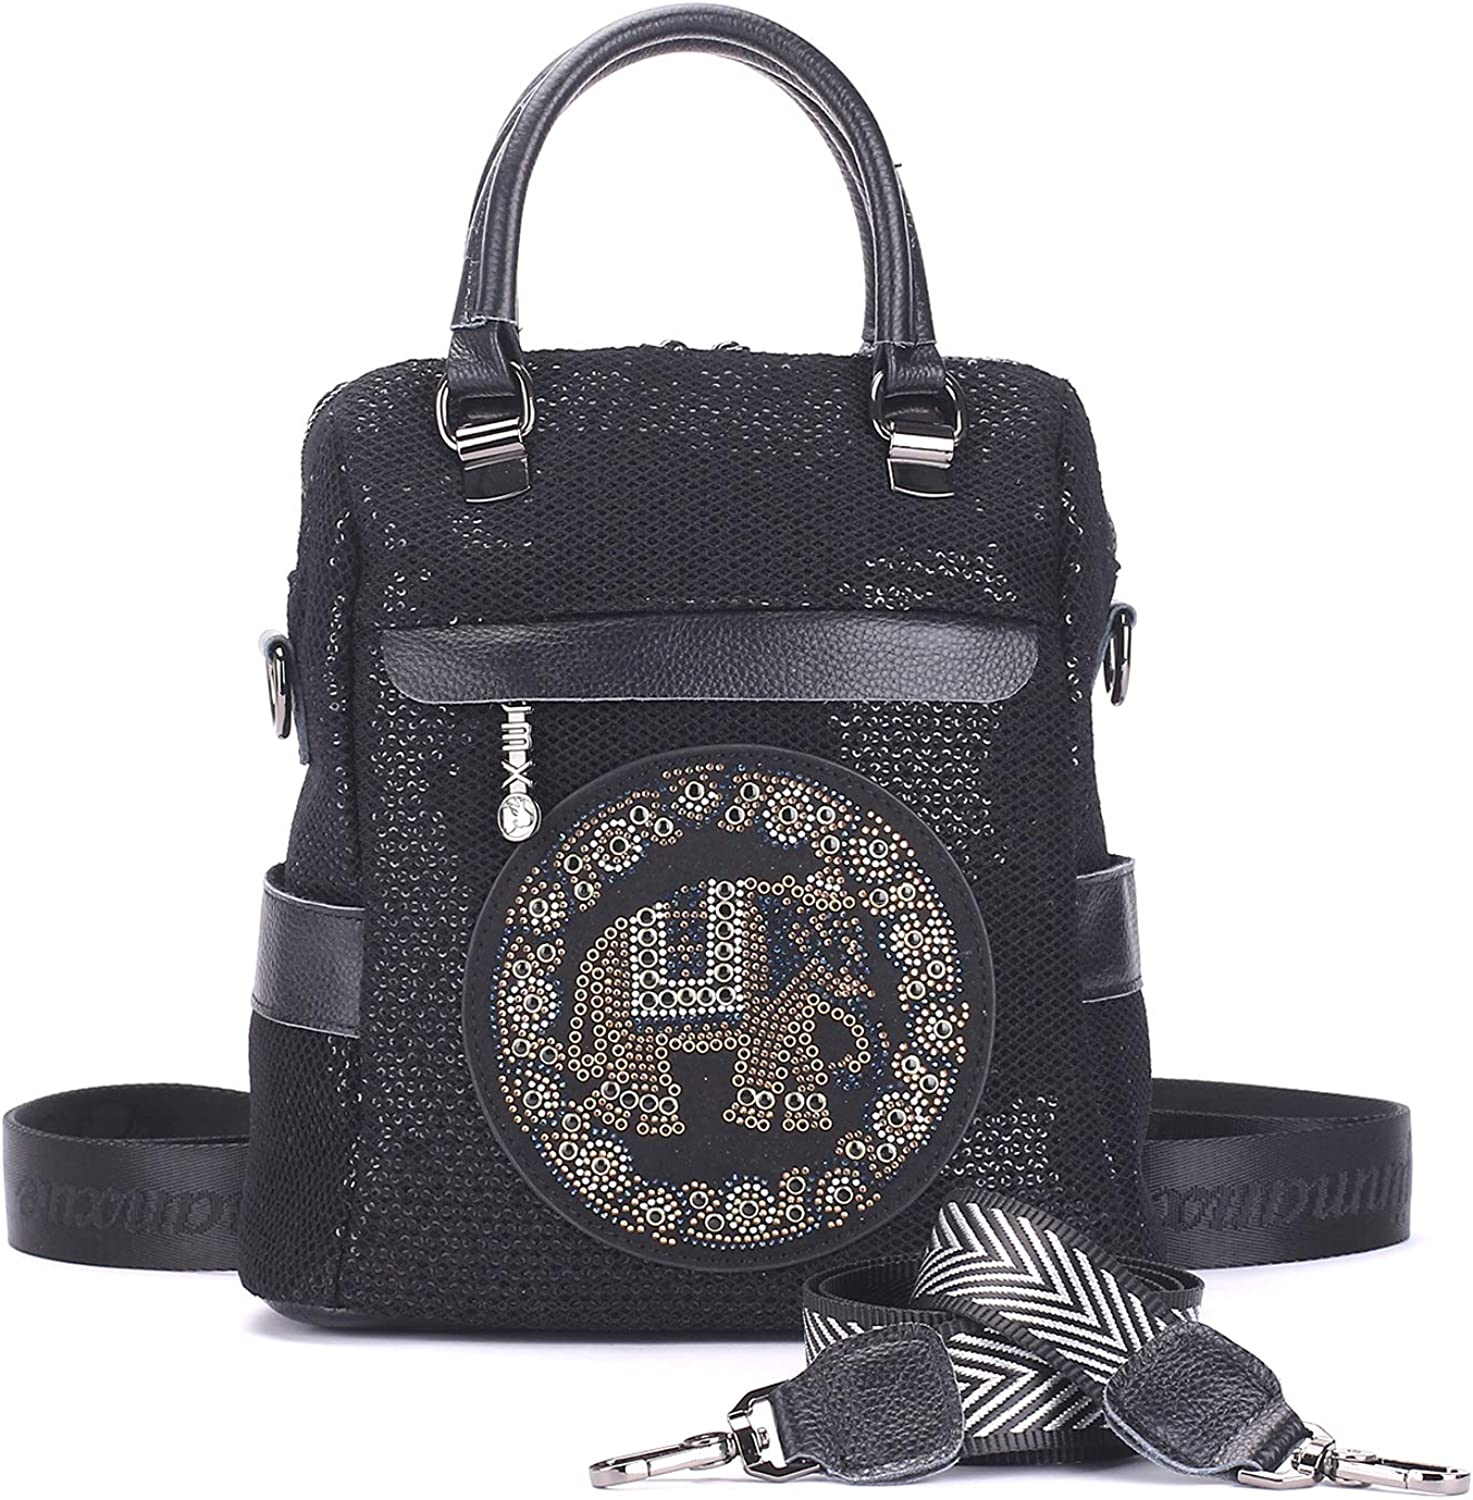 Leather Black Backpack Purse for Women Convertible Sequins Shoulder Bag Fashion Crossbody Bags Daypacks